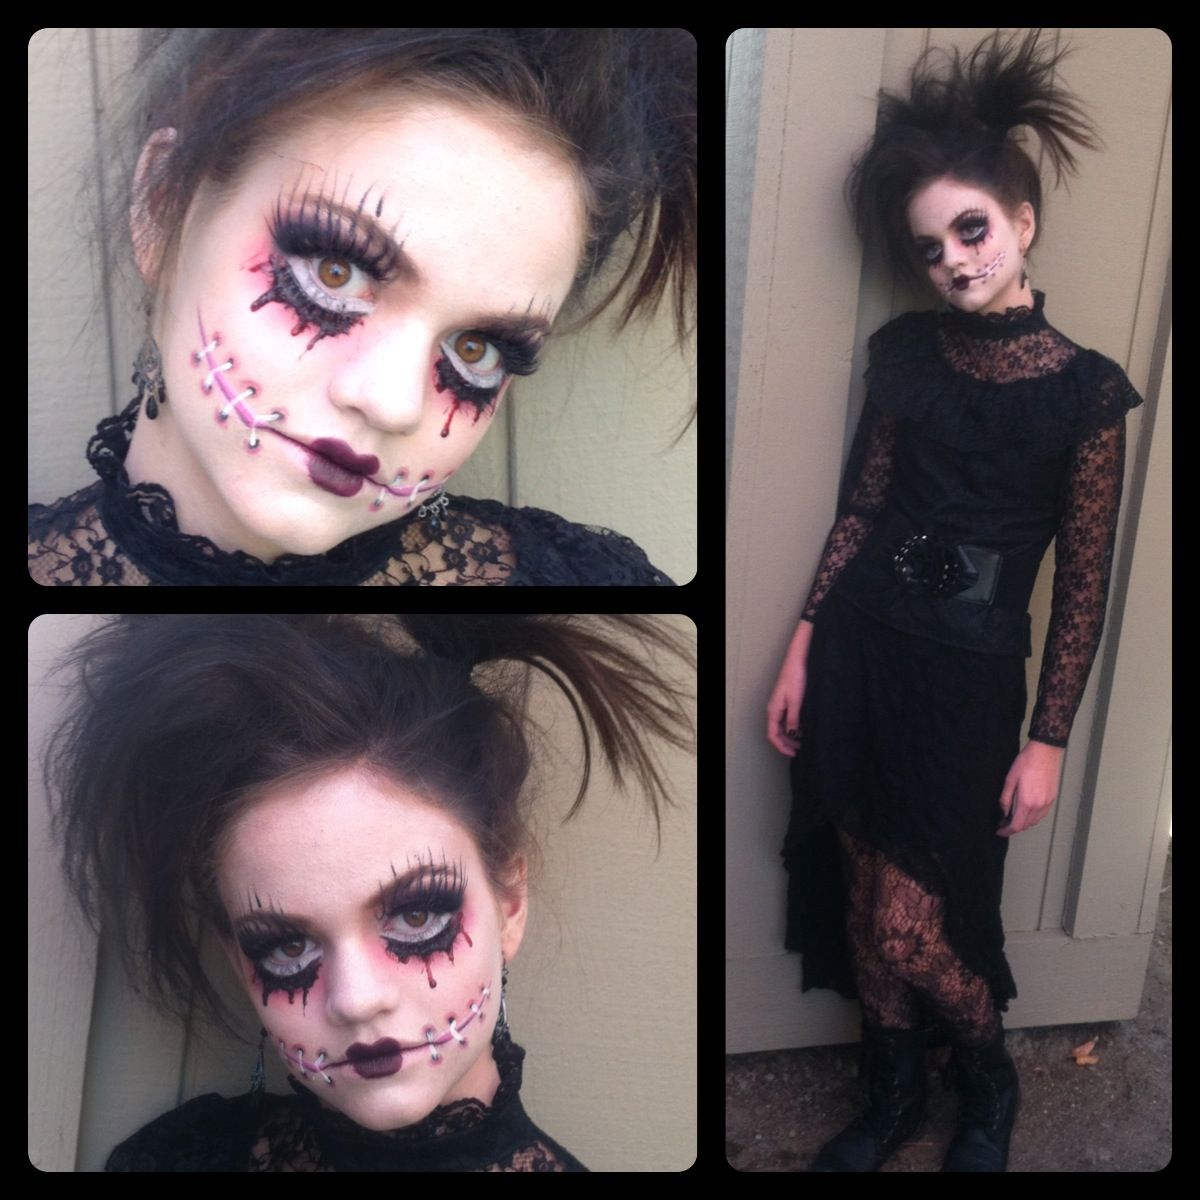 Gothic creepy doll makeup by Jessi Jewel Artistry from Rocklin Ca